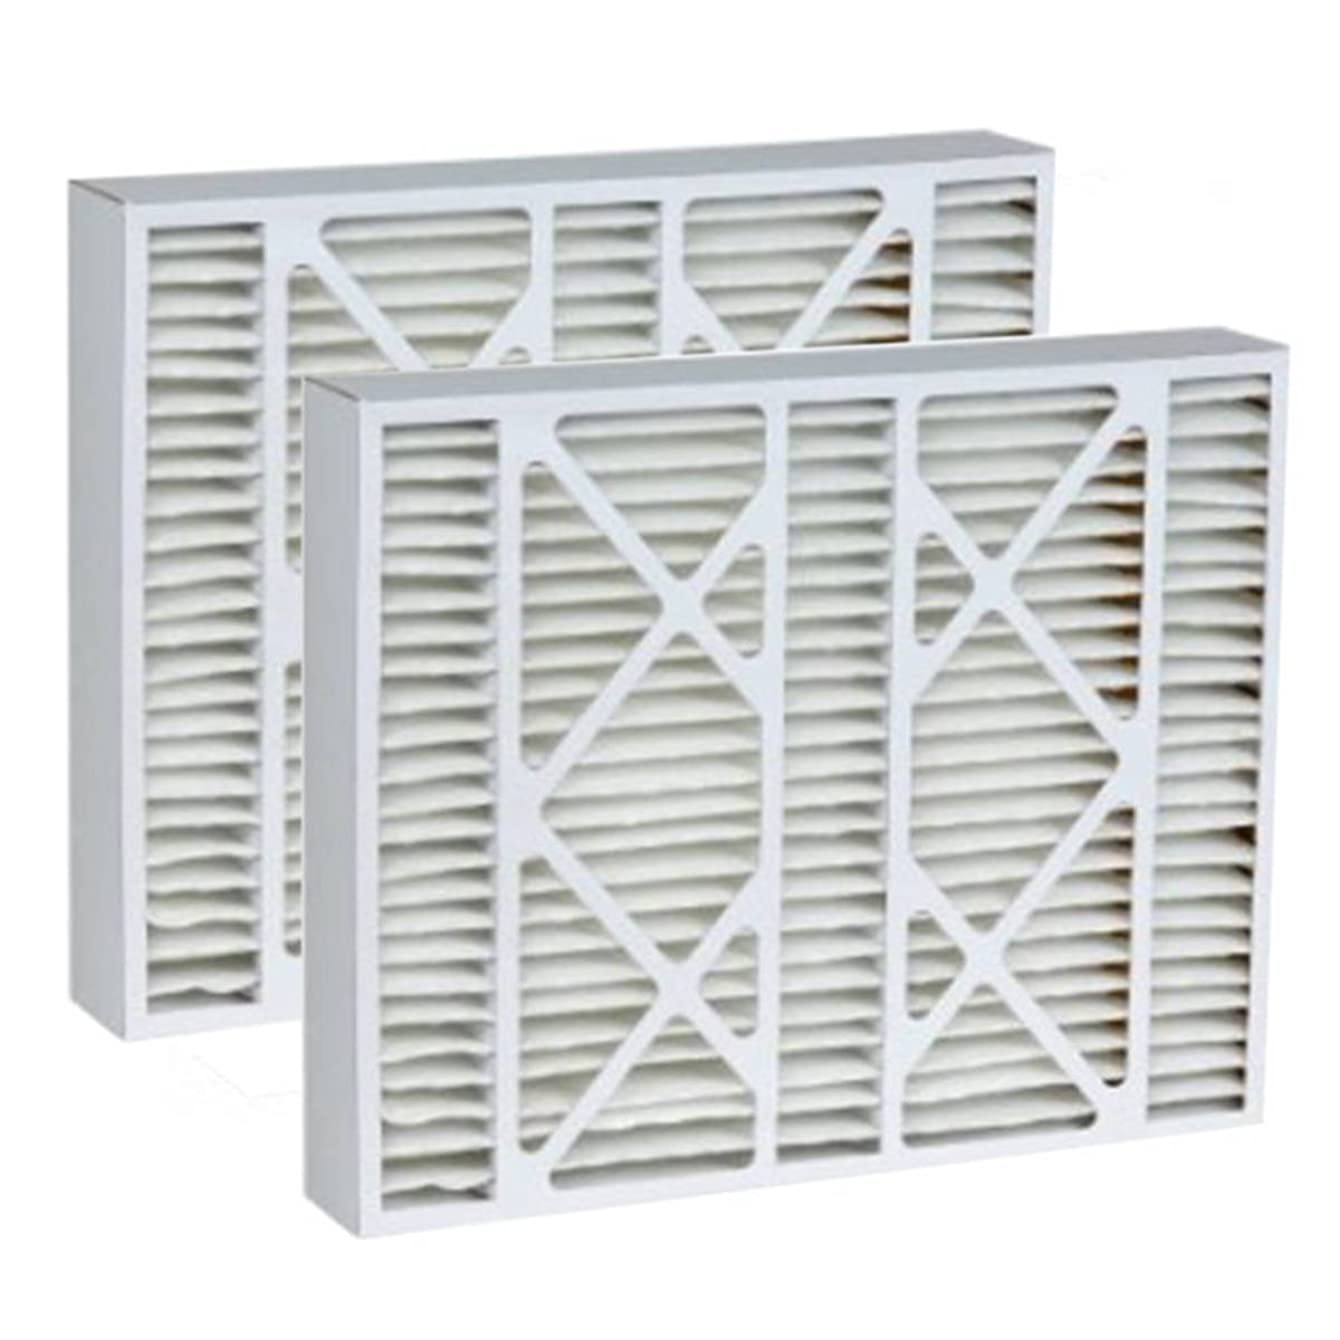 Tier1 16x25x5 Merv 8 Replacement for Honeywell FC100A1029 AC Furnace Filter 2 Pack